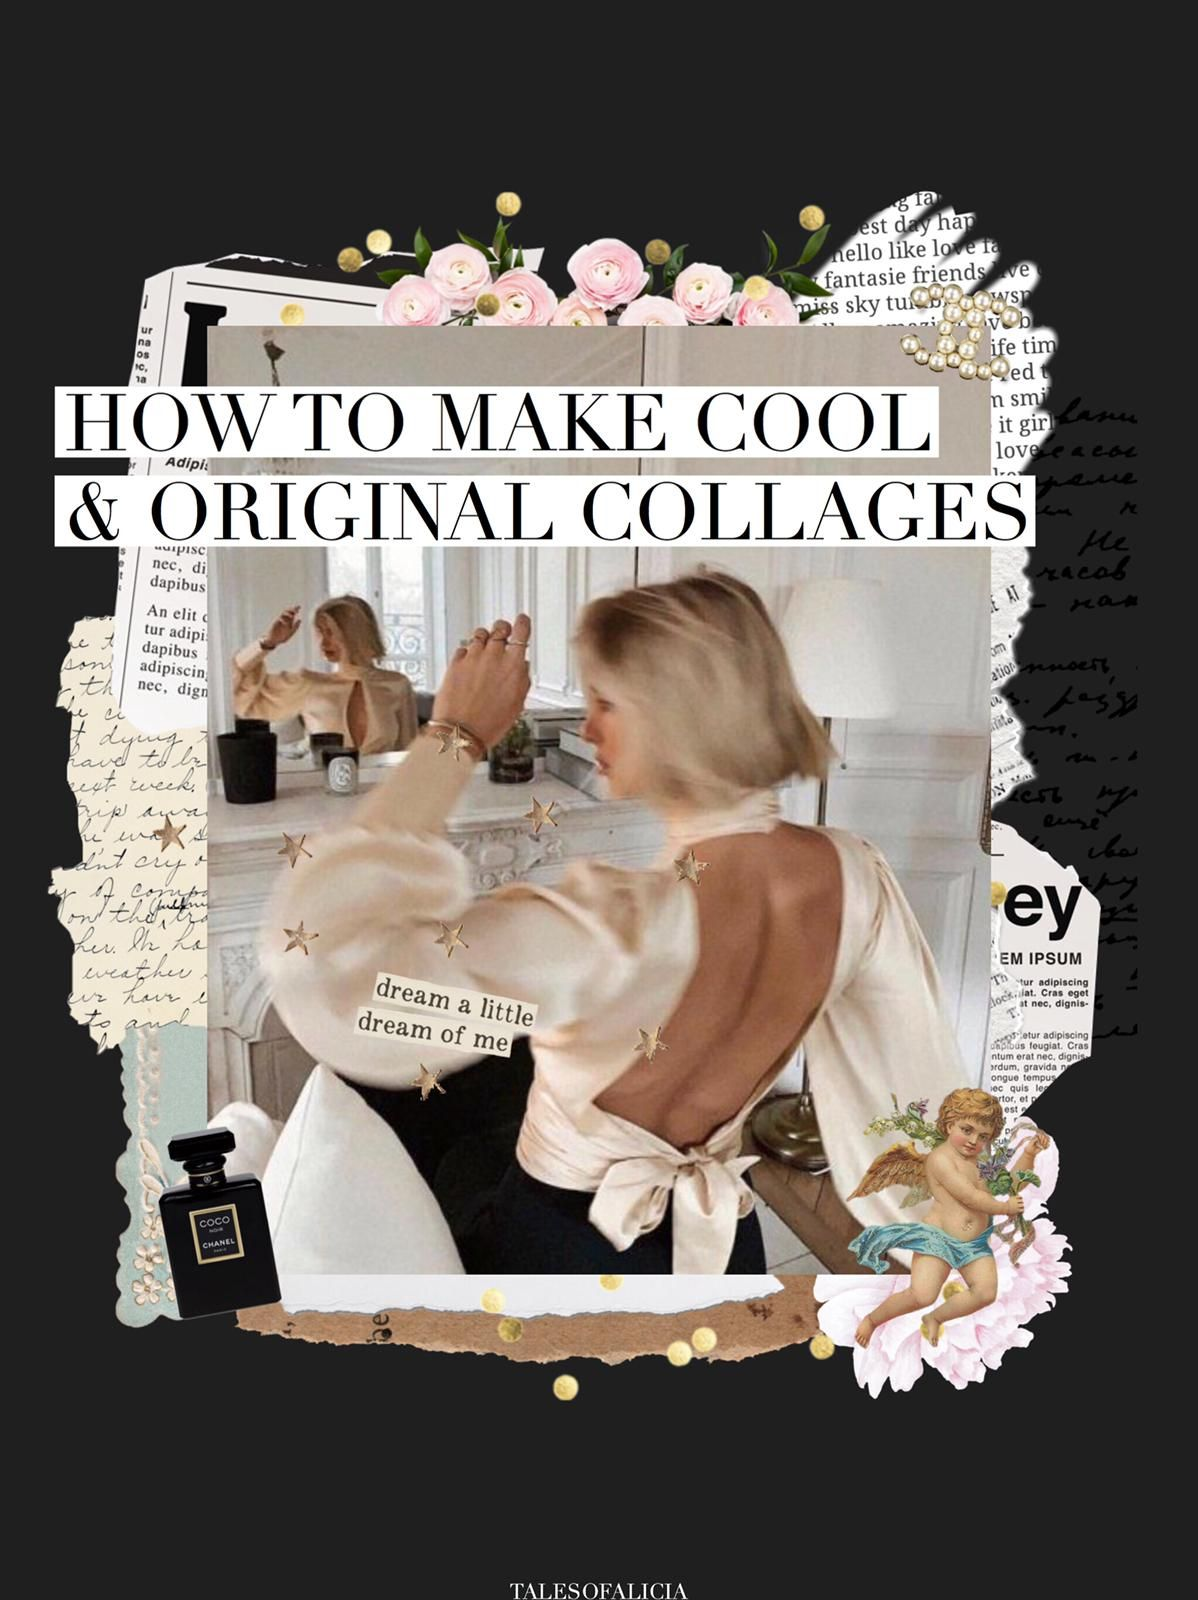 HOW TO MAKE COOL & ORIGINAL COLLAGES ON YOUR PHONE (With